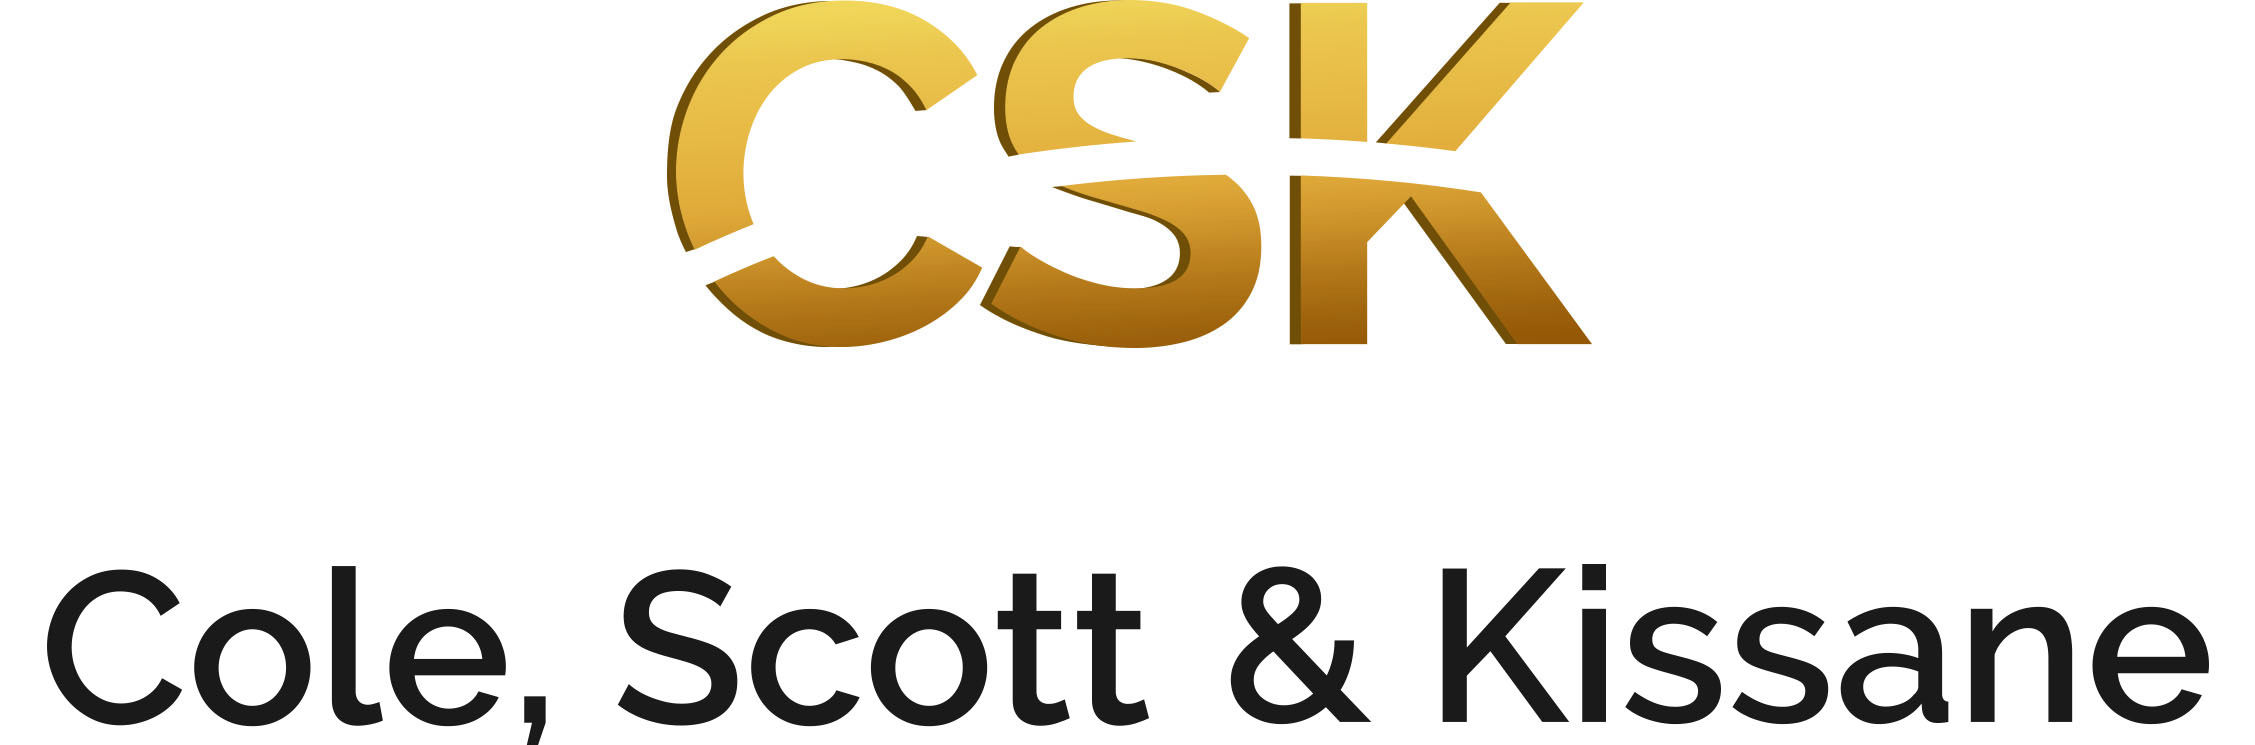 Cole, Scott & Kissane logo